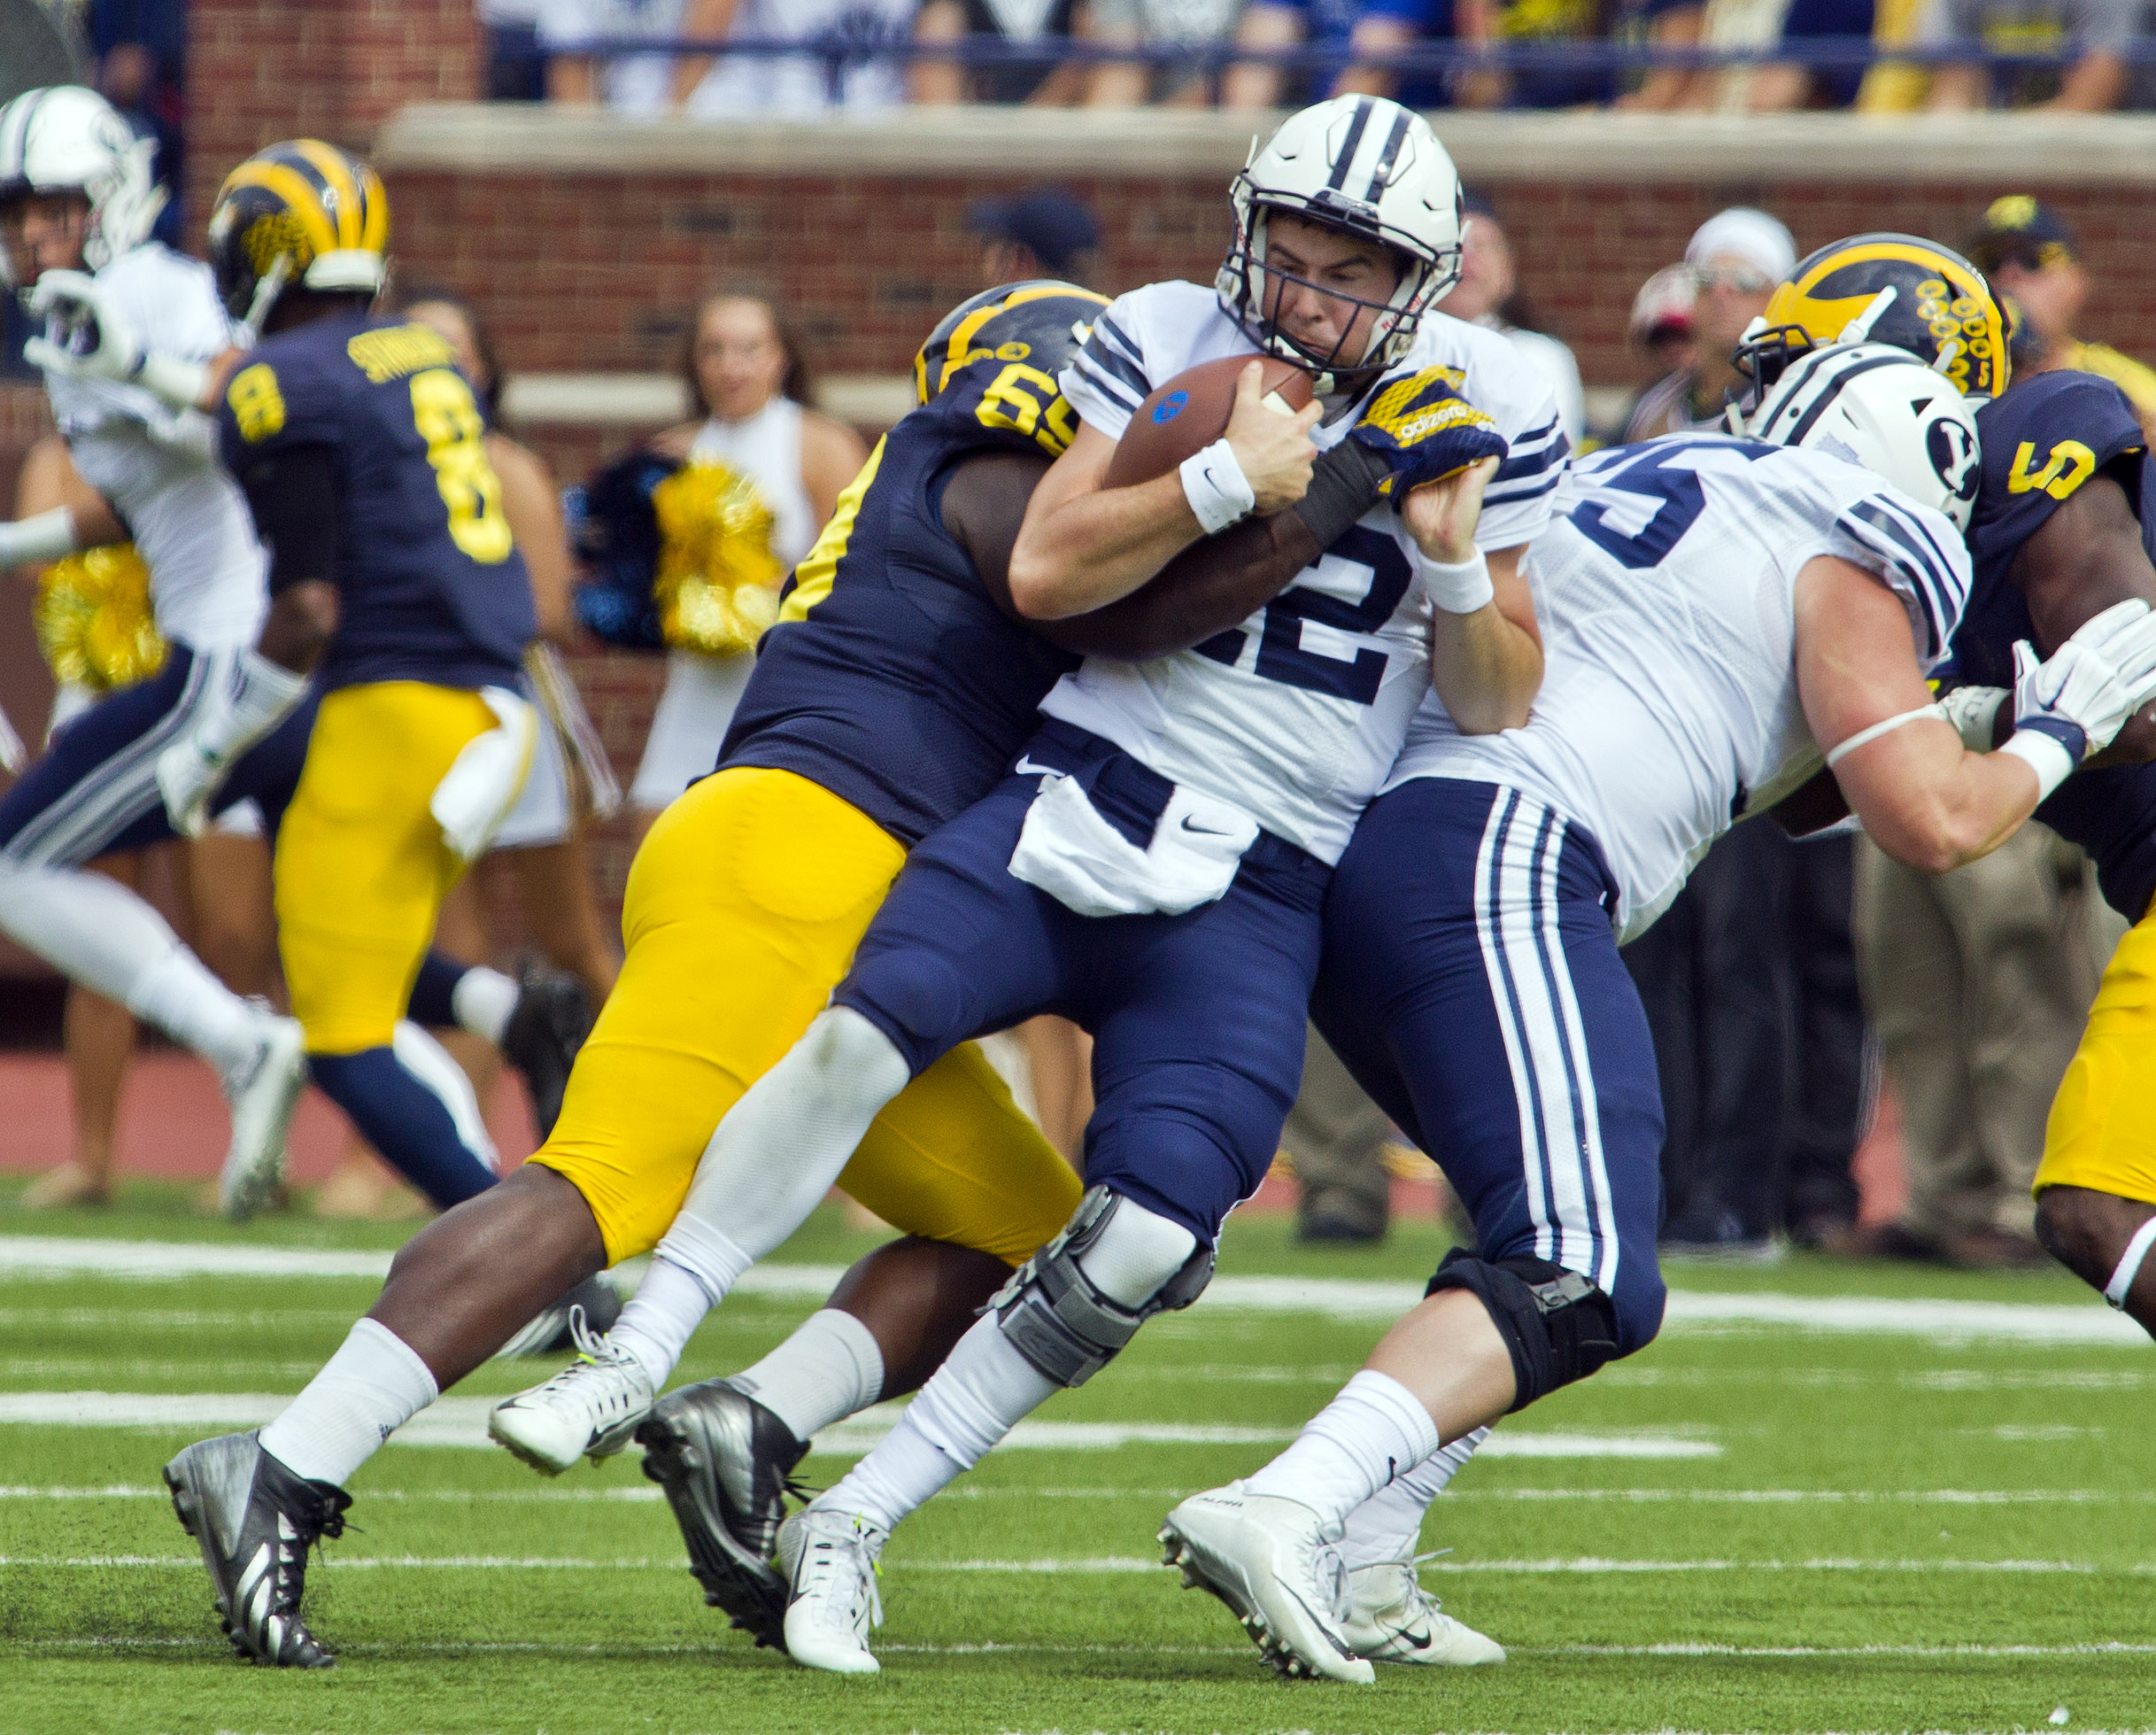 FILE - In this Sept. 26, 2015 file photo, BYU quarterback Tanner Mangum (12) is sacked by Michigan linebacker Noah Furbush (59) in the second quarter of an NCAA college football game in Ann Arbor, Mich.  Michigan is back in The Associated Press poll, rank